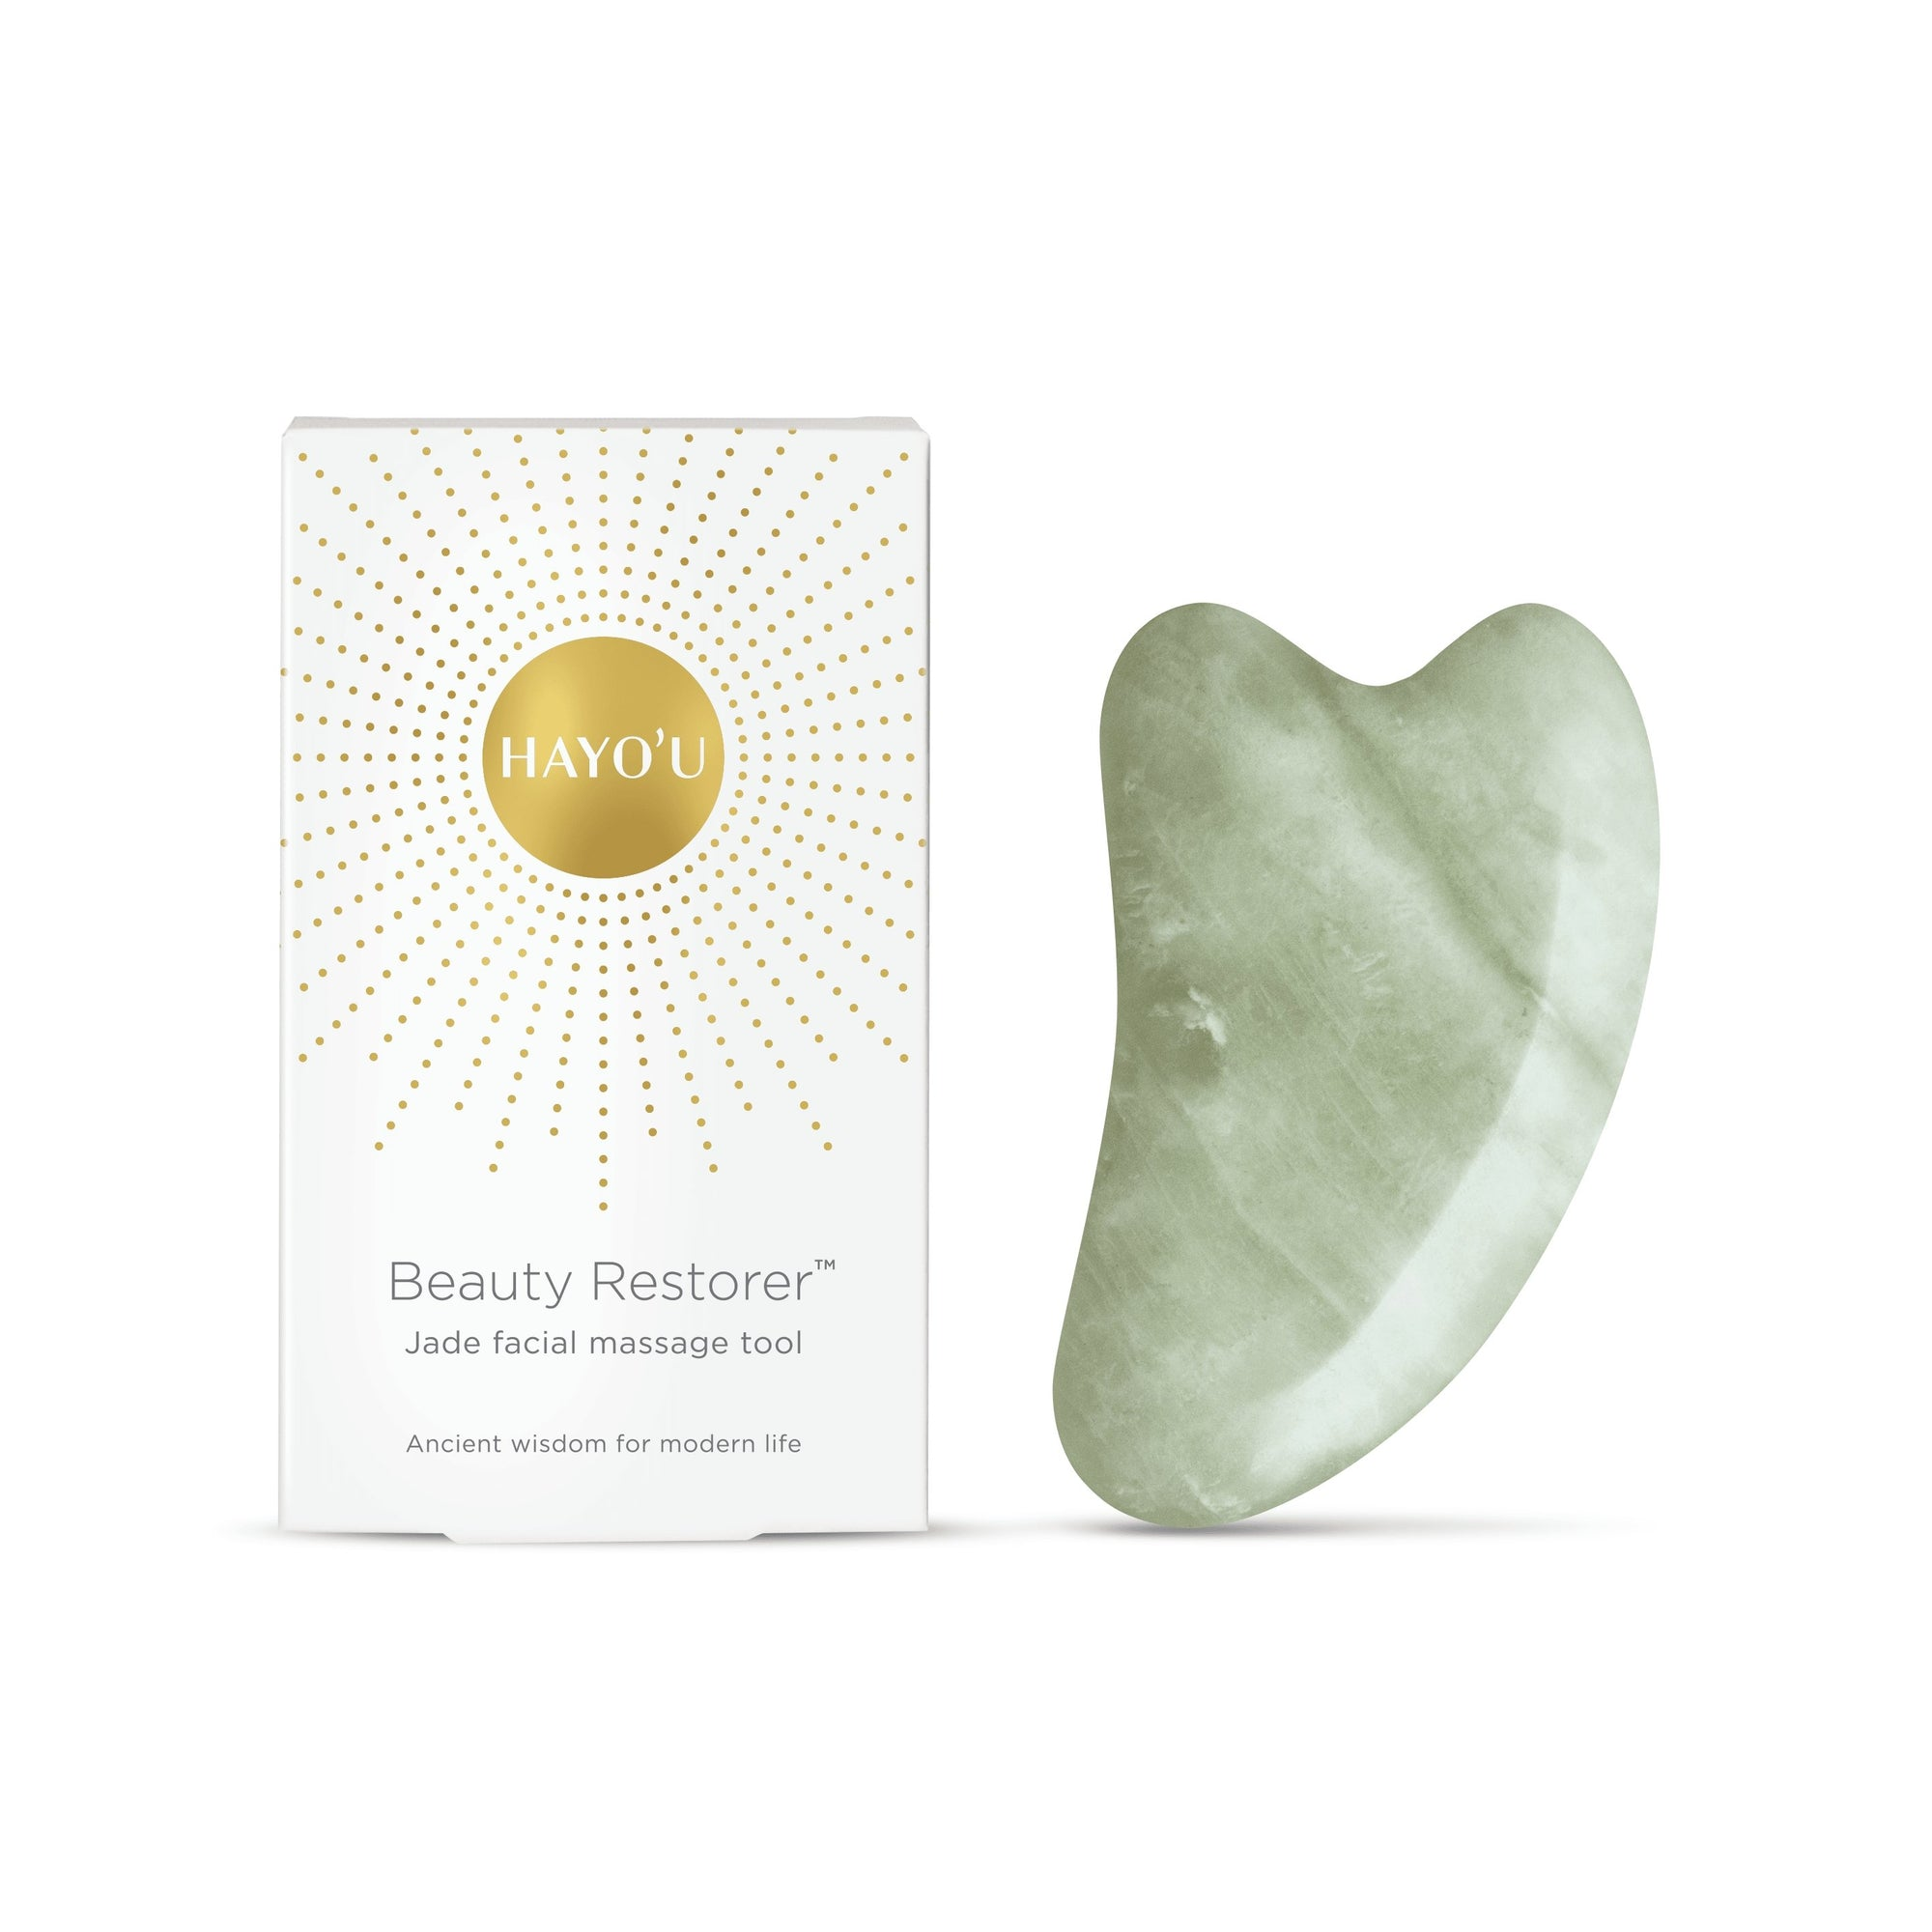 Hayo'u Beauty Restorer